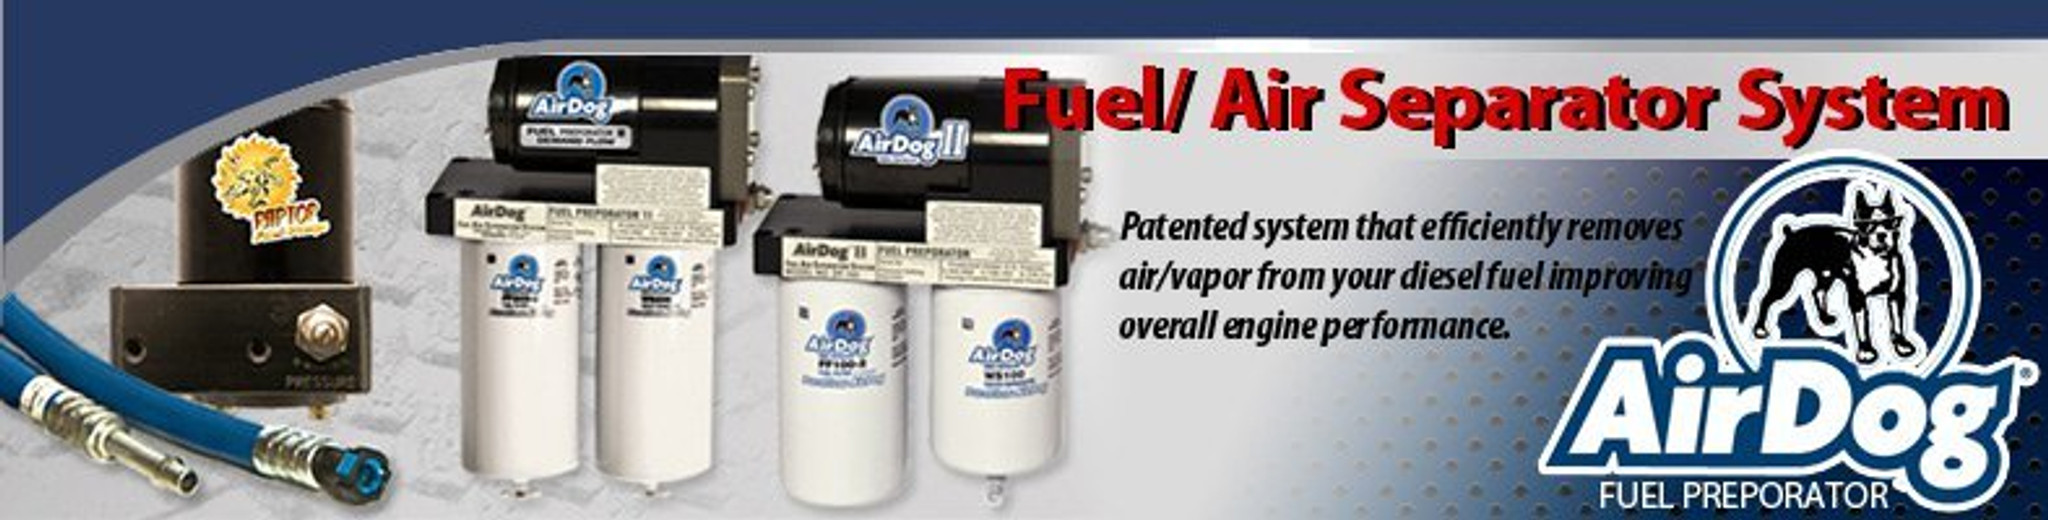 AirDog Fuel System/Multifunction Sump